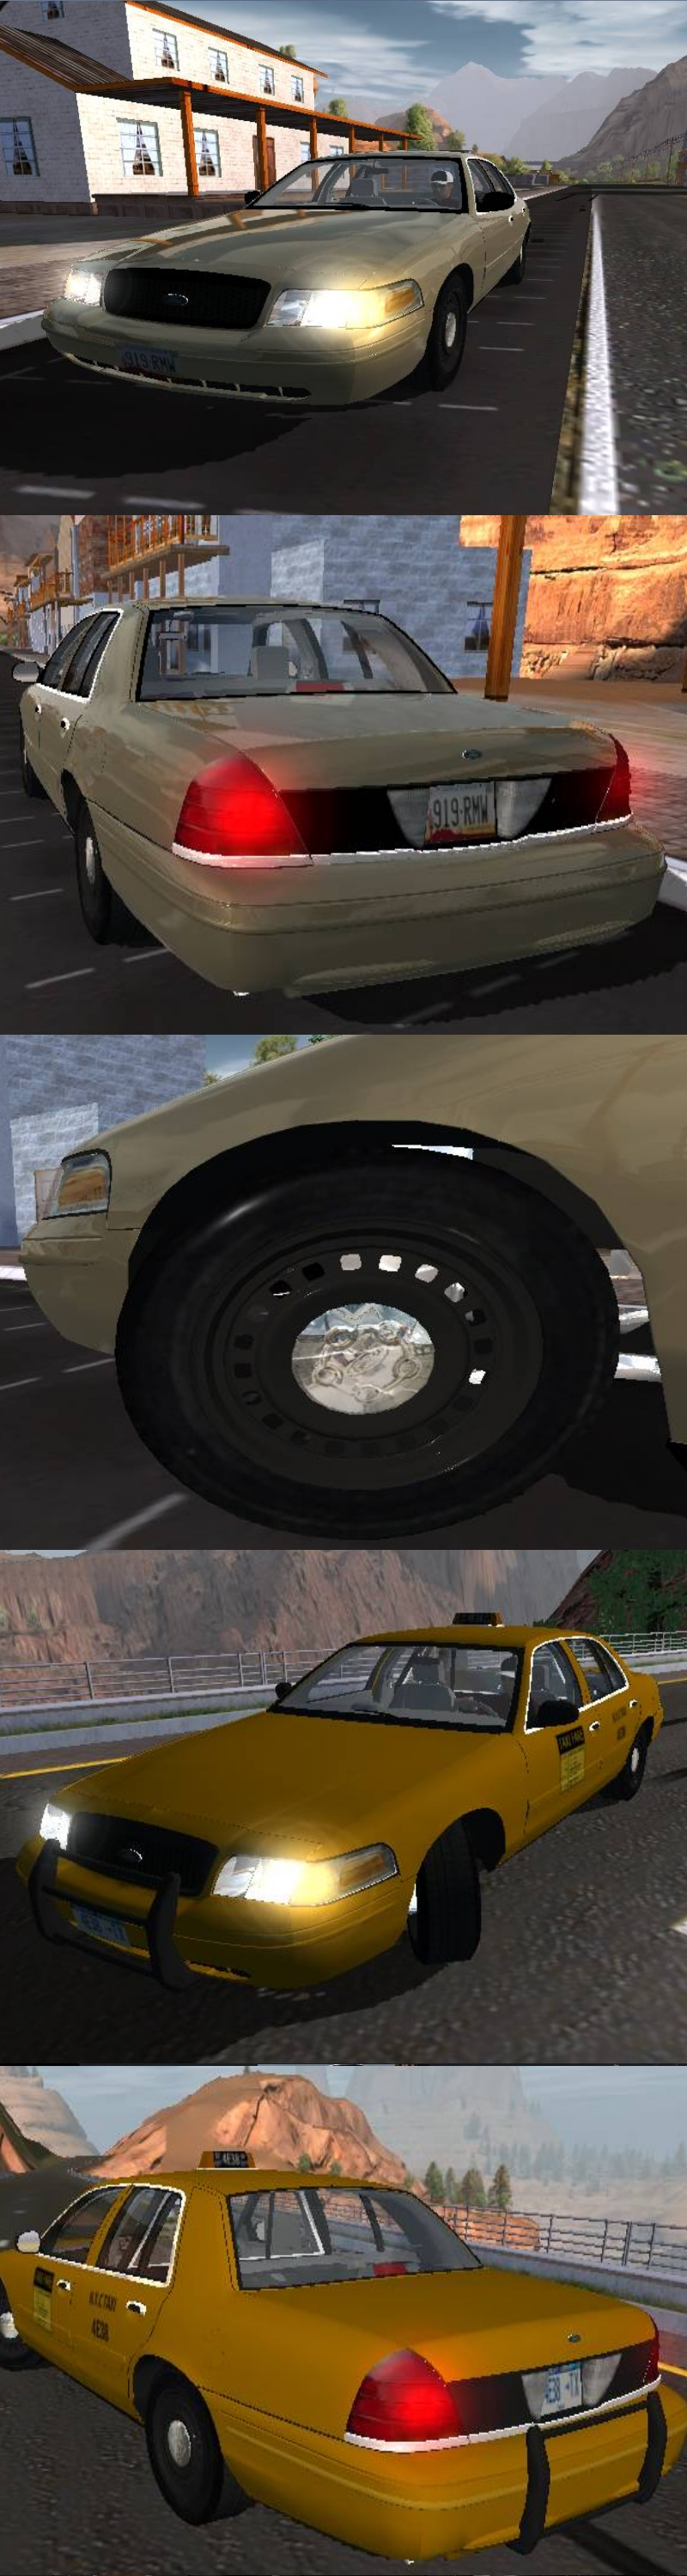 http://games.reveur.de/images/previews/ford_crownvic_kodiak982.jpg